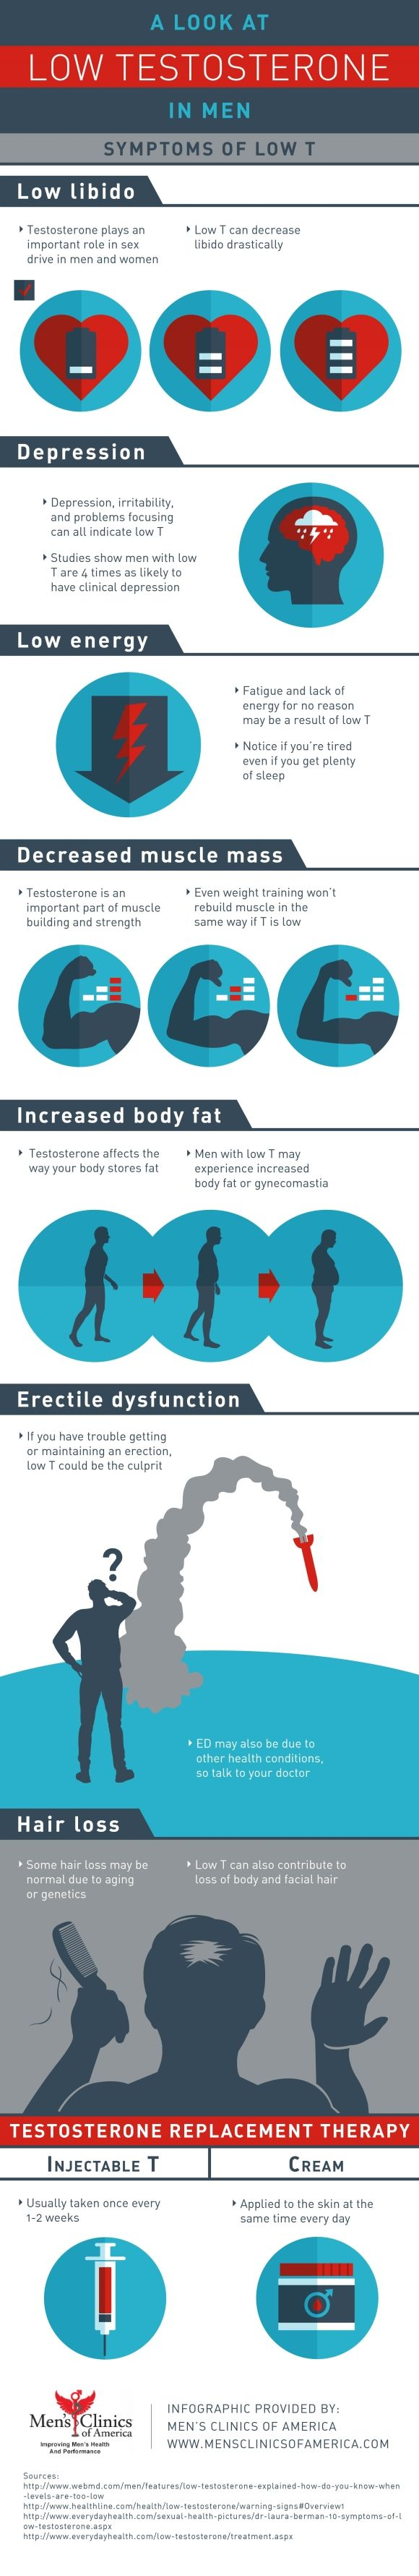 Do you have trouble getting or maintaining an erection? If so, low testosterone could be the culprit! Take a look at this Houston testosterone replacement therapy infographic to learn more about symptoms of low T as well as treatments.